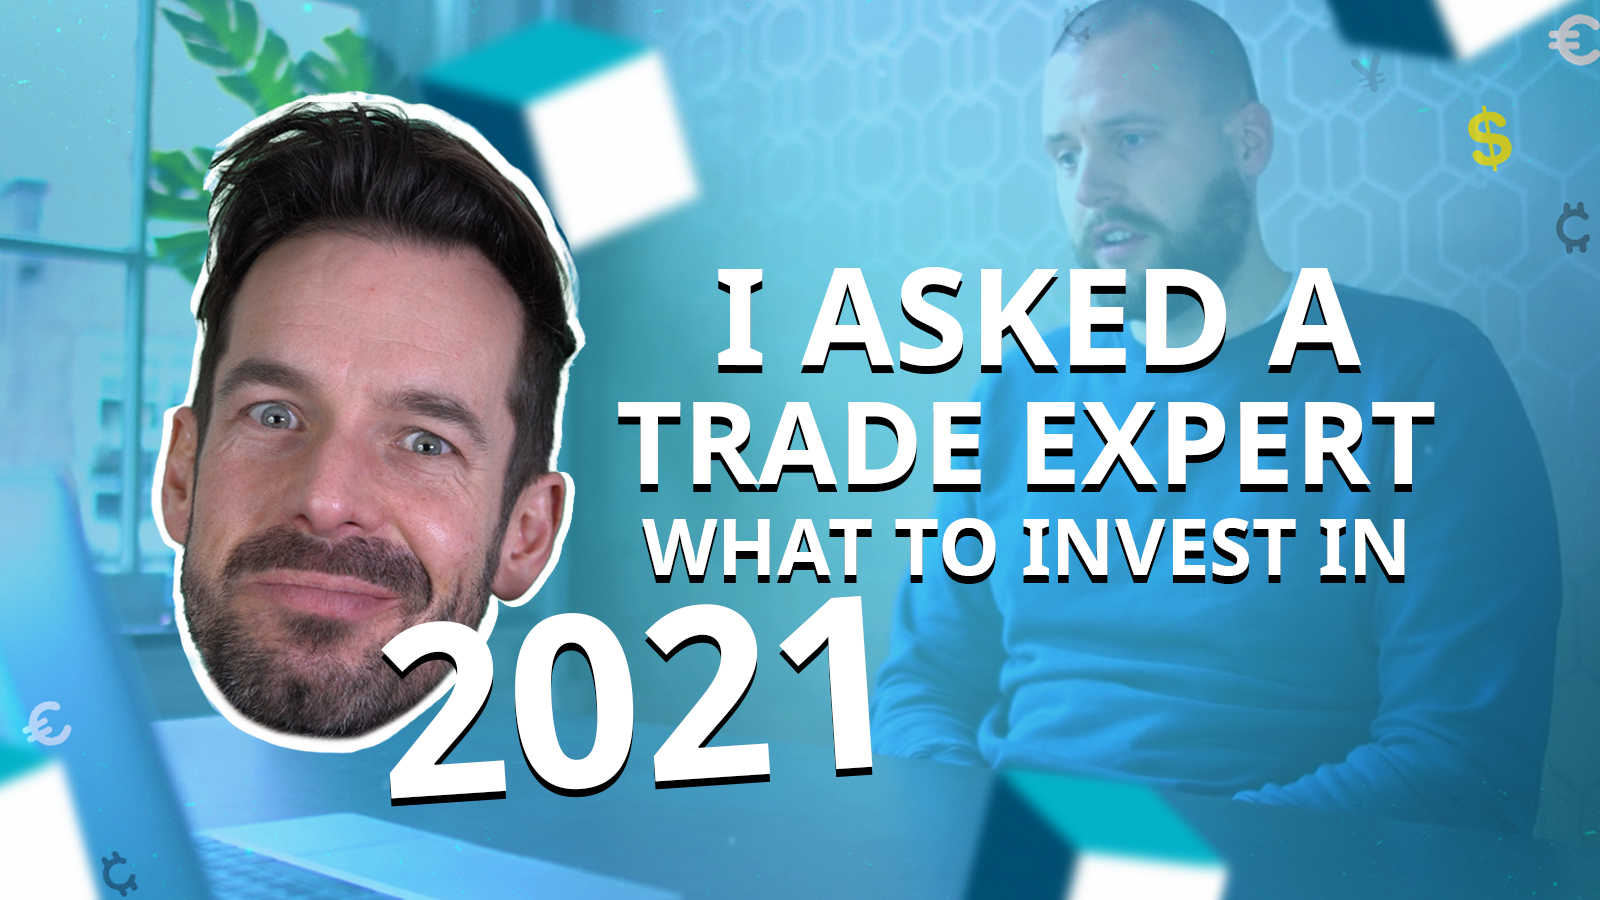 BOTS Blog: Which assets should I start trading in 2021?